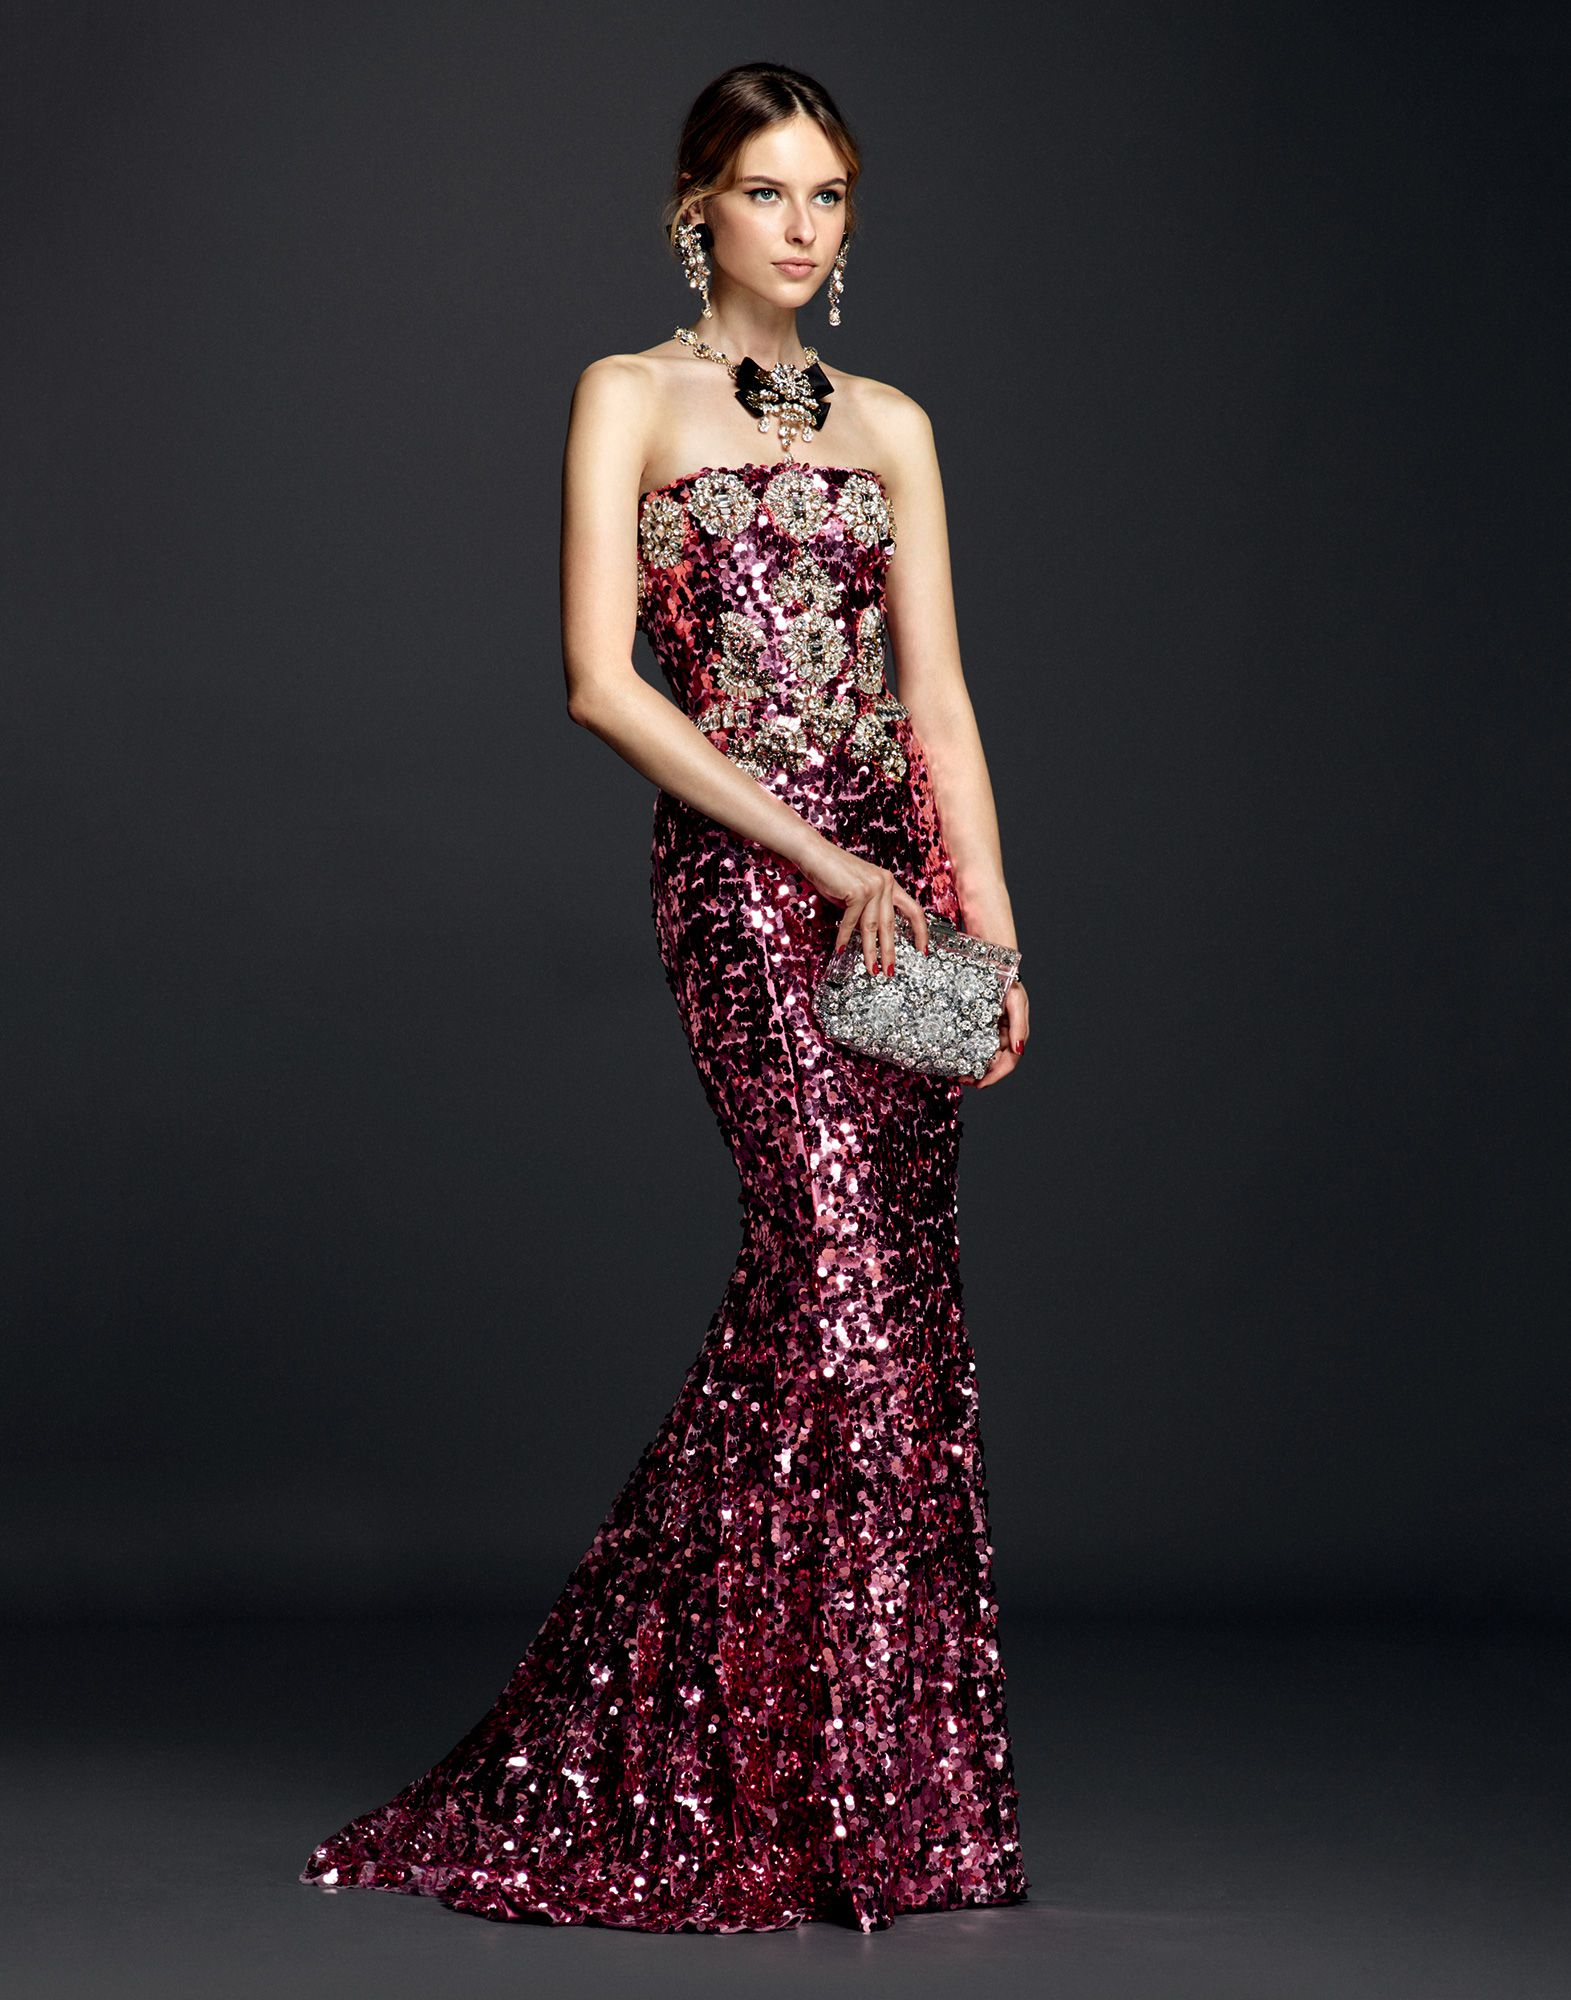 Lyst - Dolce & Gabbana Sequin Gown With Crystals And Jeweled Belt in ...